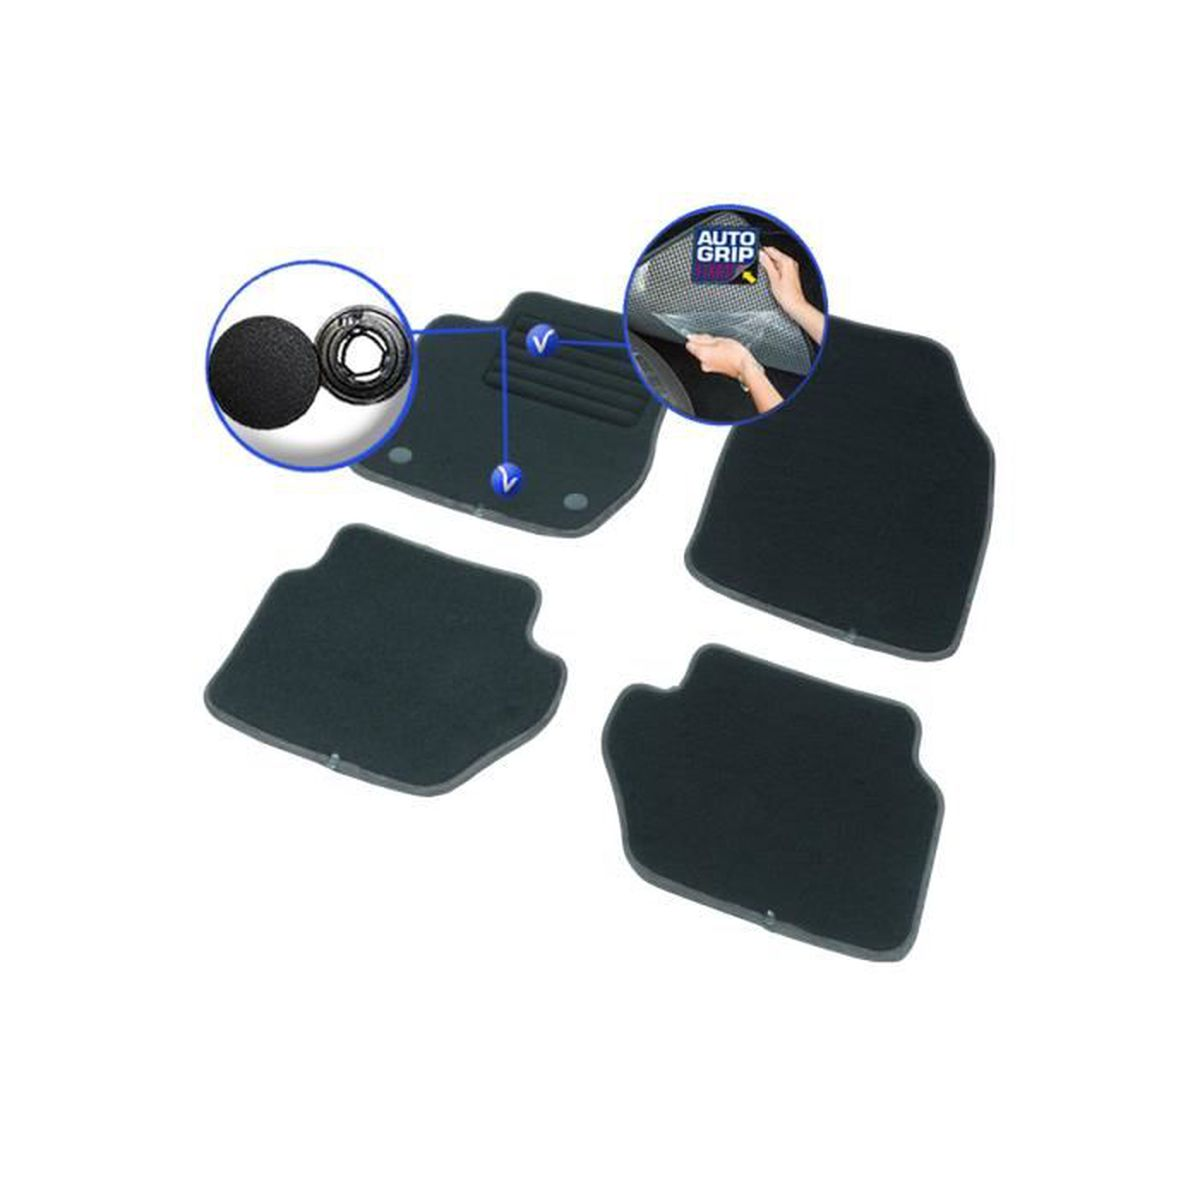 tapis voiture sur mesure elite ford c max de 01 2013 2017 achat vente tapis de sol. Black Bedroom Furniture Sets. Home Design Ideas